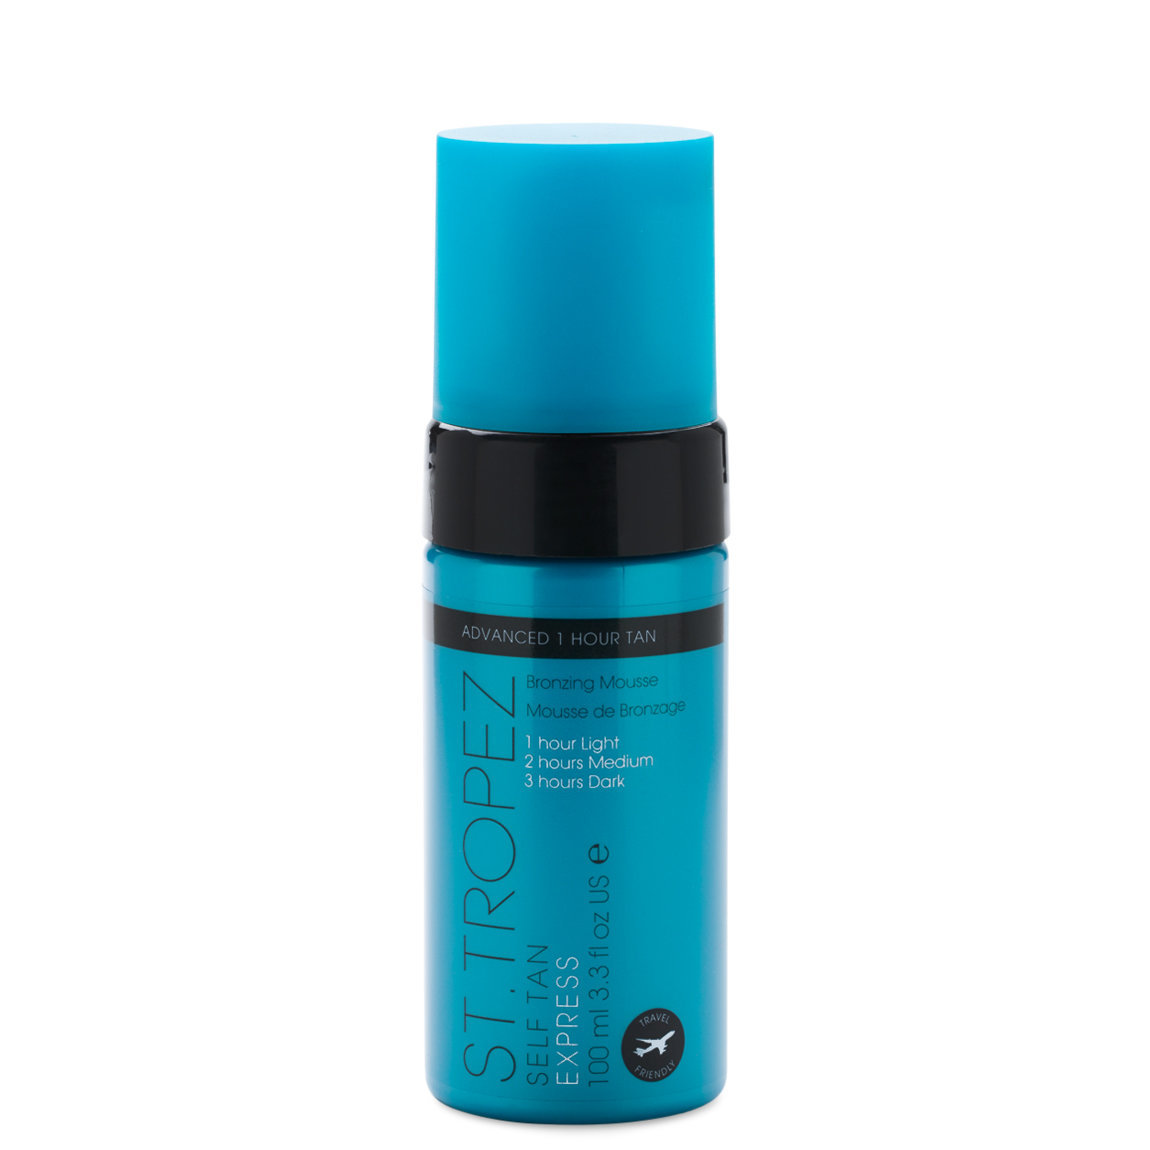 St. Tropez Self Tan Express Advanced Bronzing Mousse 100 ml alternative view 1 - product swatch.